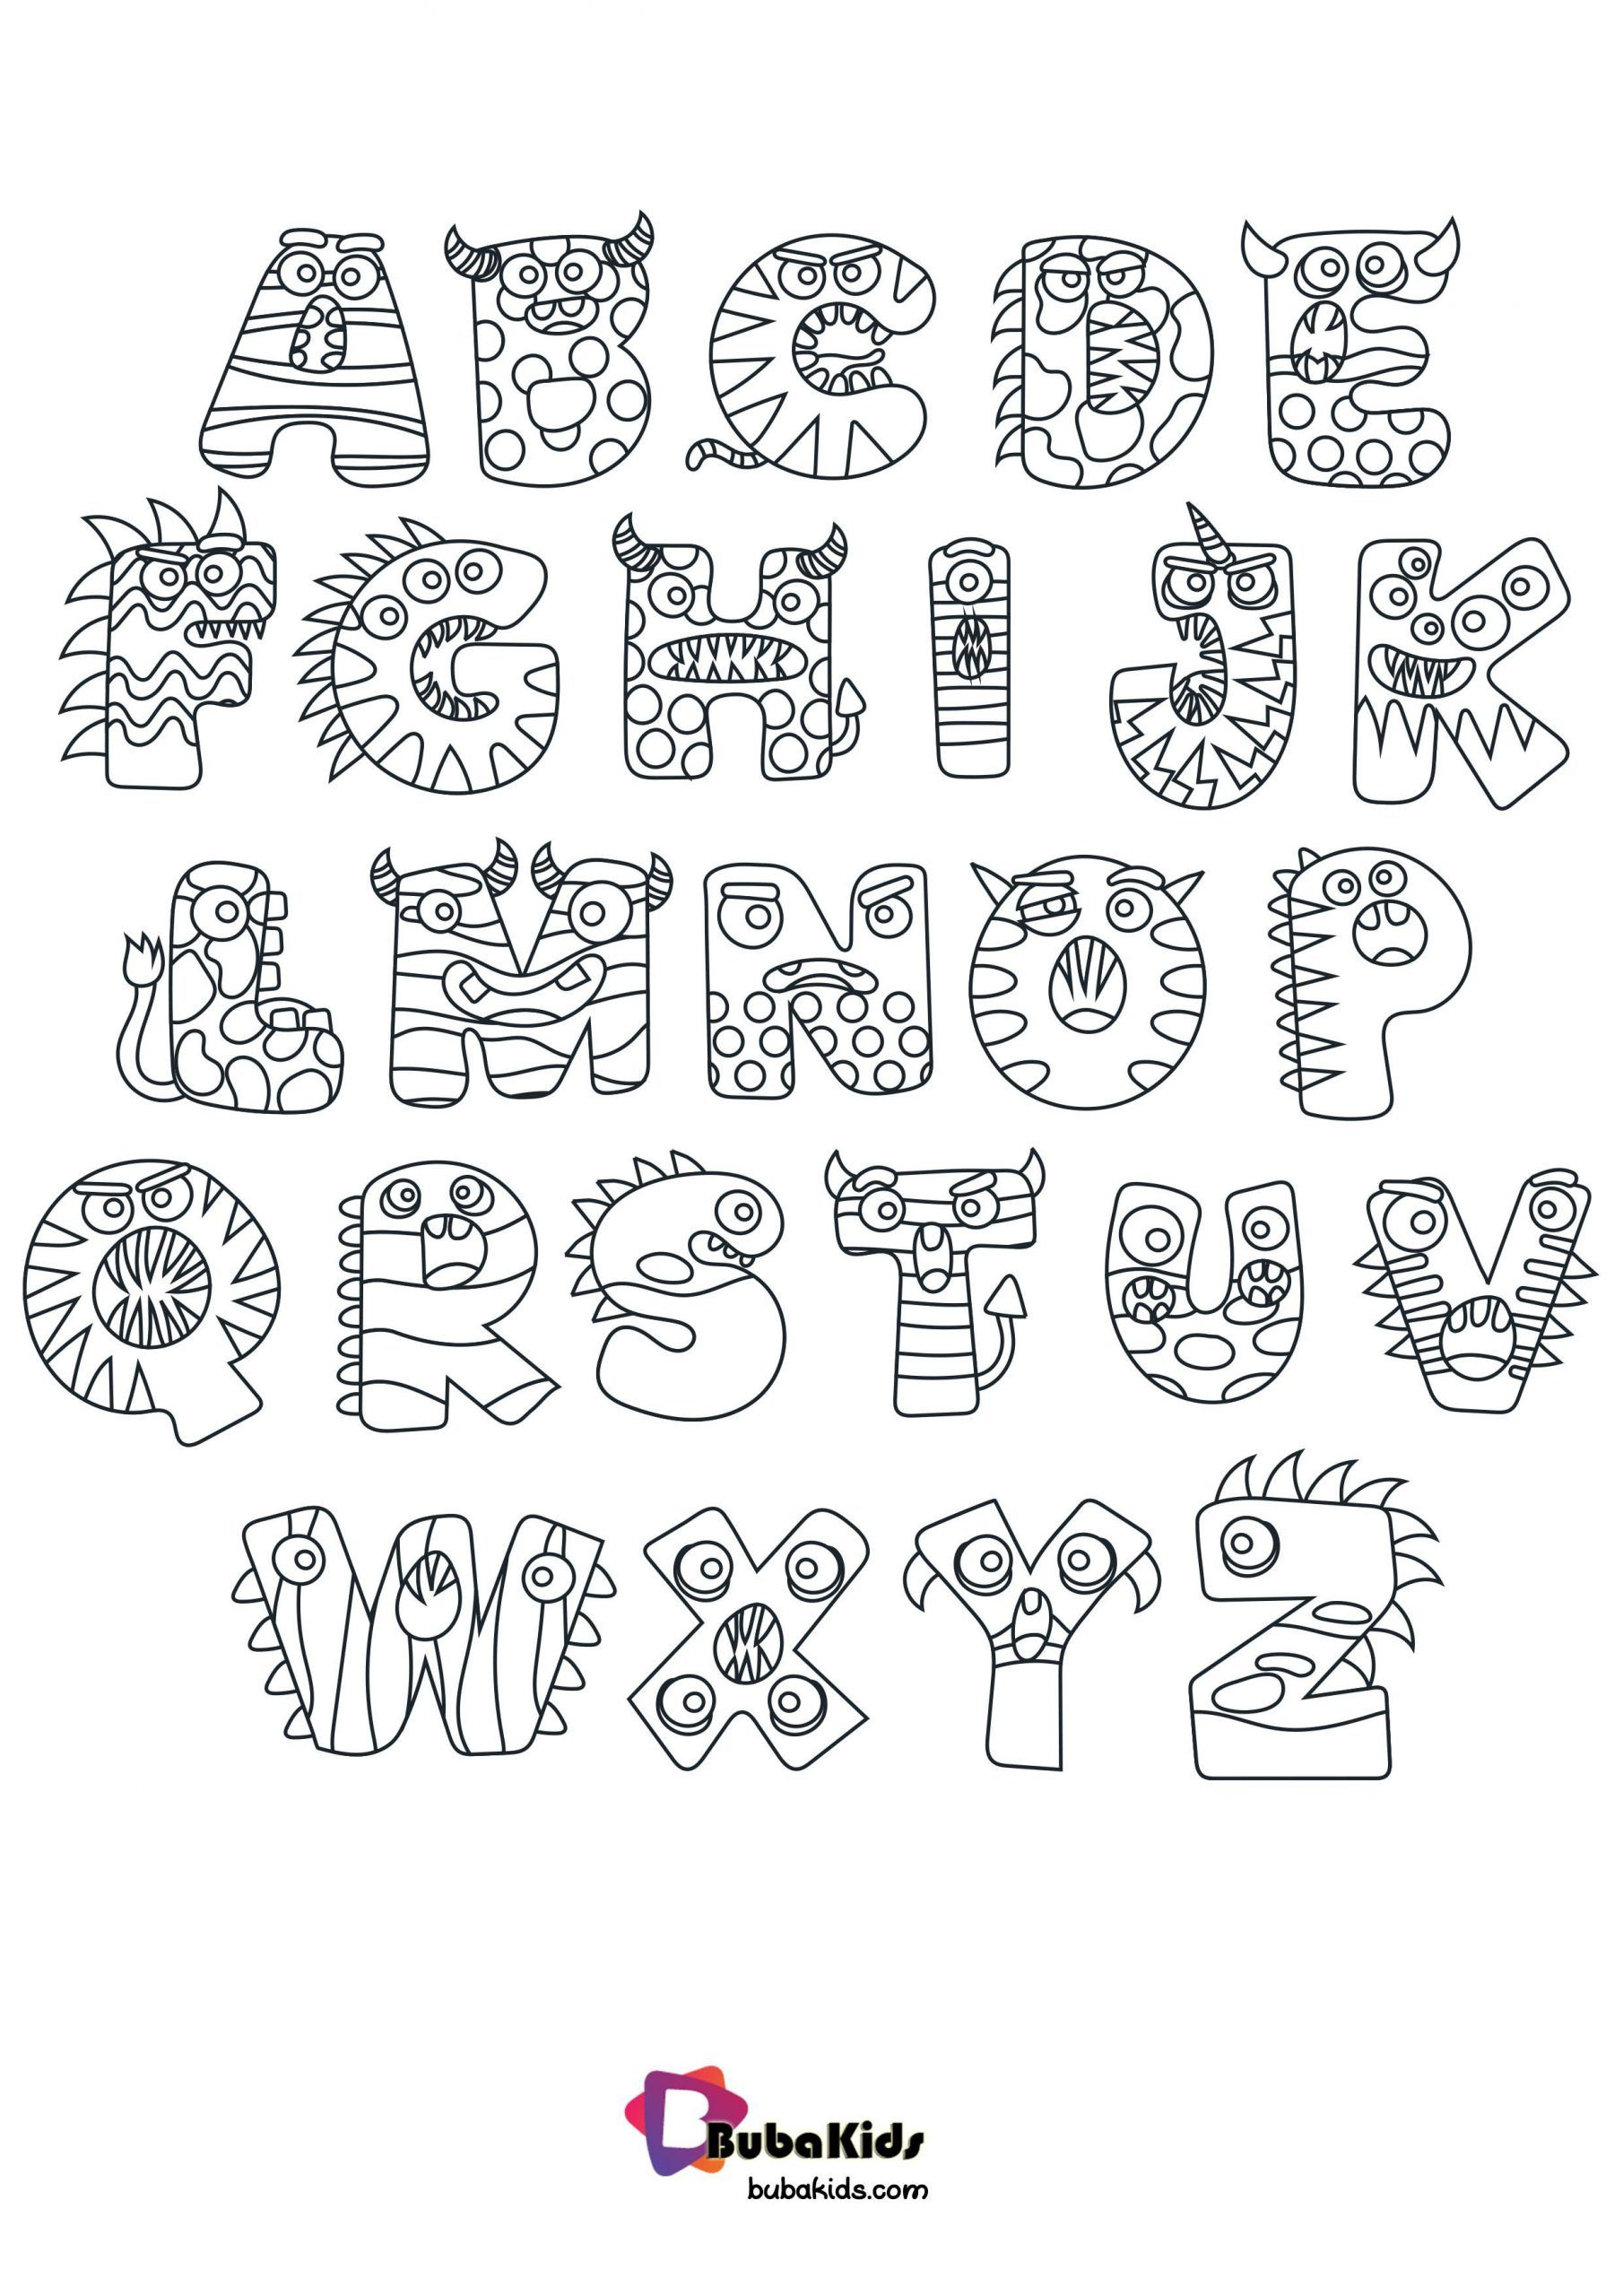 Halloween Alphabet Coloring Pages In 2020 Alphabet Coloring Alphabet Coloring Pages Free Halloween Coloring Pages